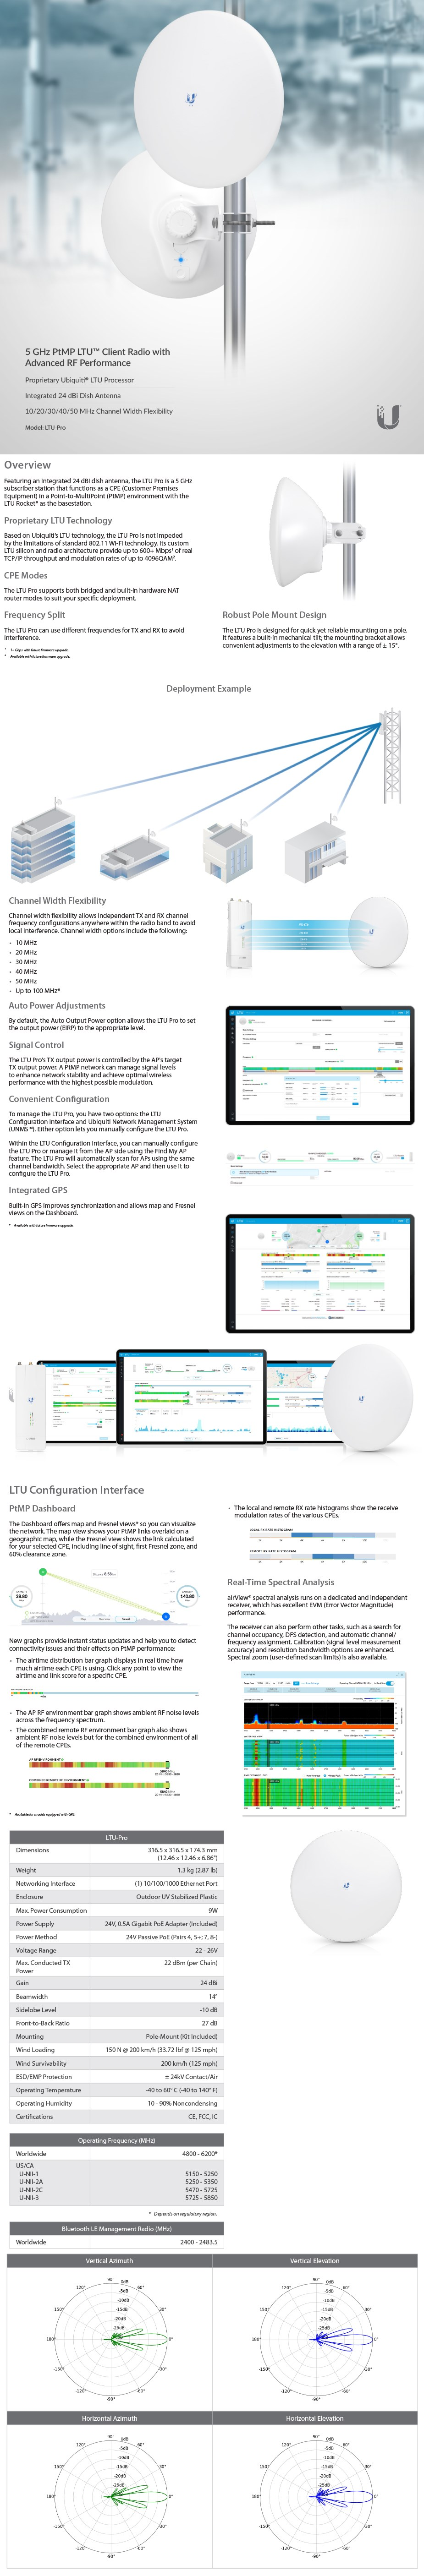 Ubiquiti LTU Pro Point-to-MultiPoint 5GHz Client Radio - Overview 1